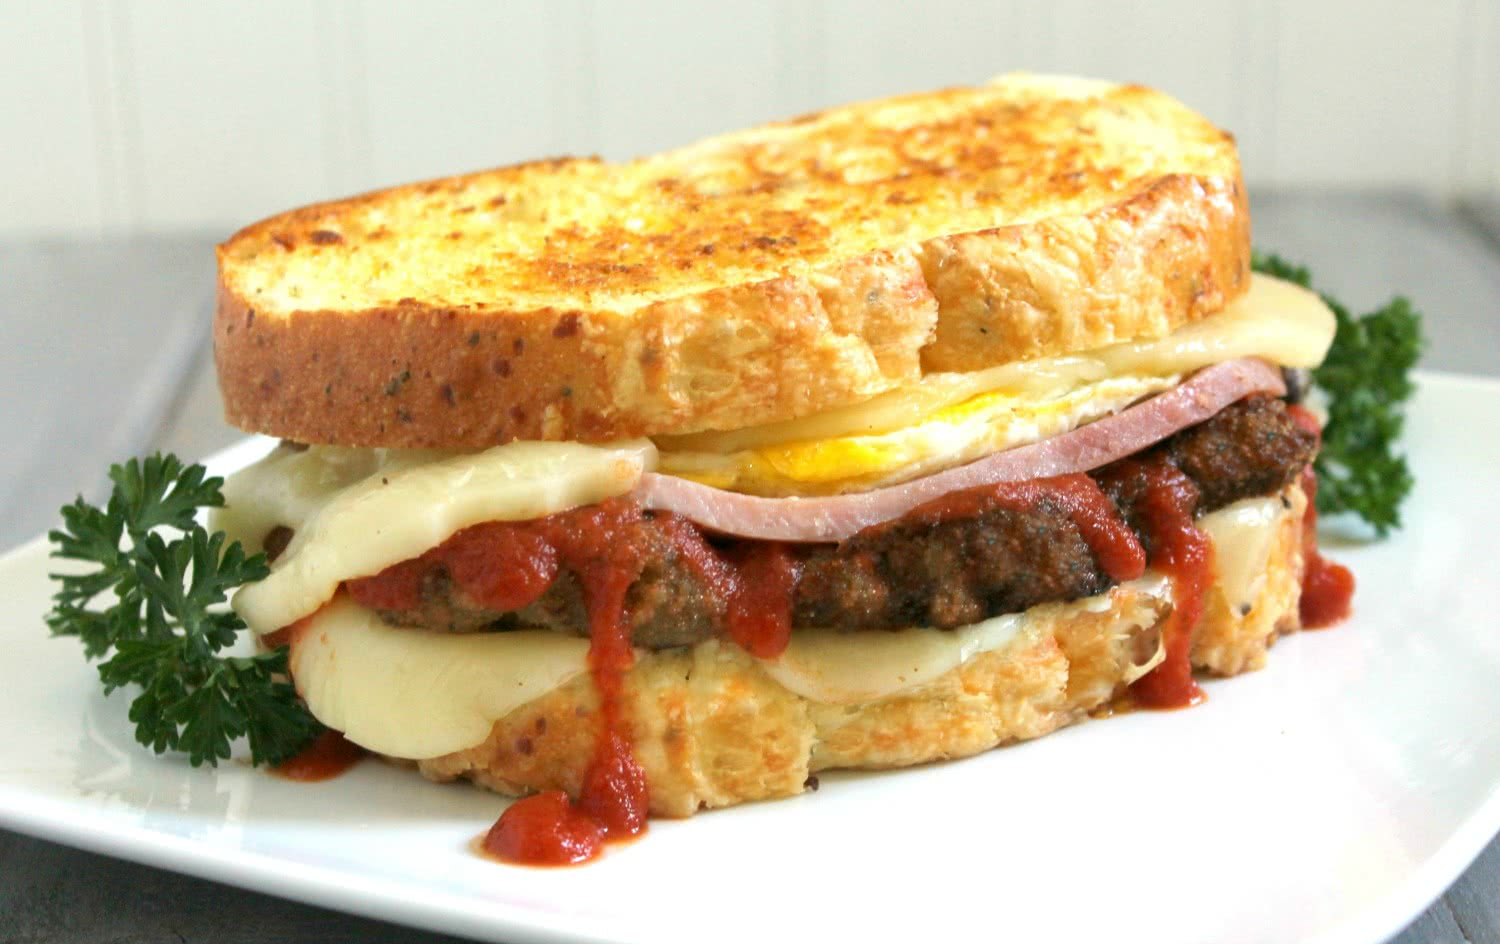 The Neapolitan Grilled Cheese Sandwich Recipe